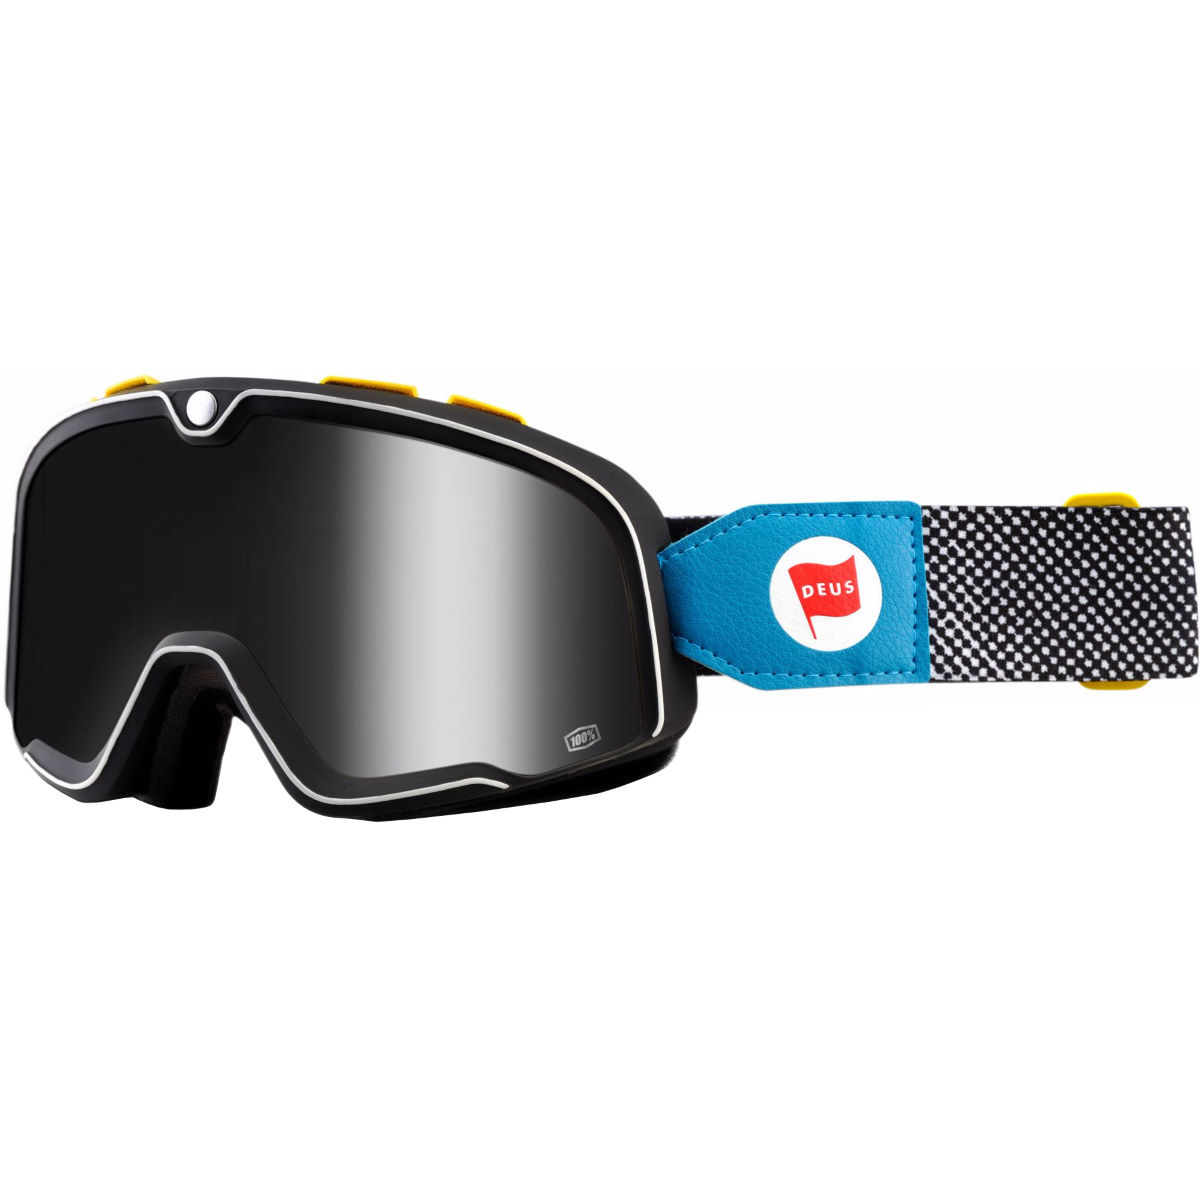 100% 100% Barstow Goggles   Cycling Goggles